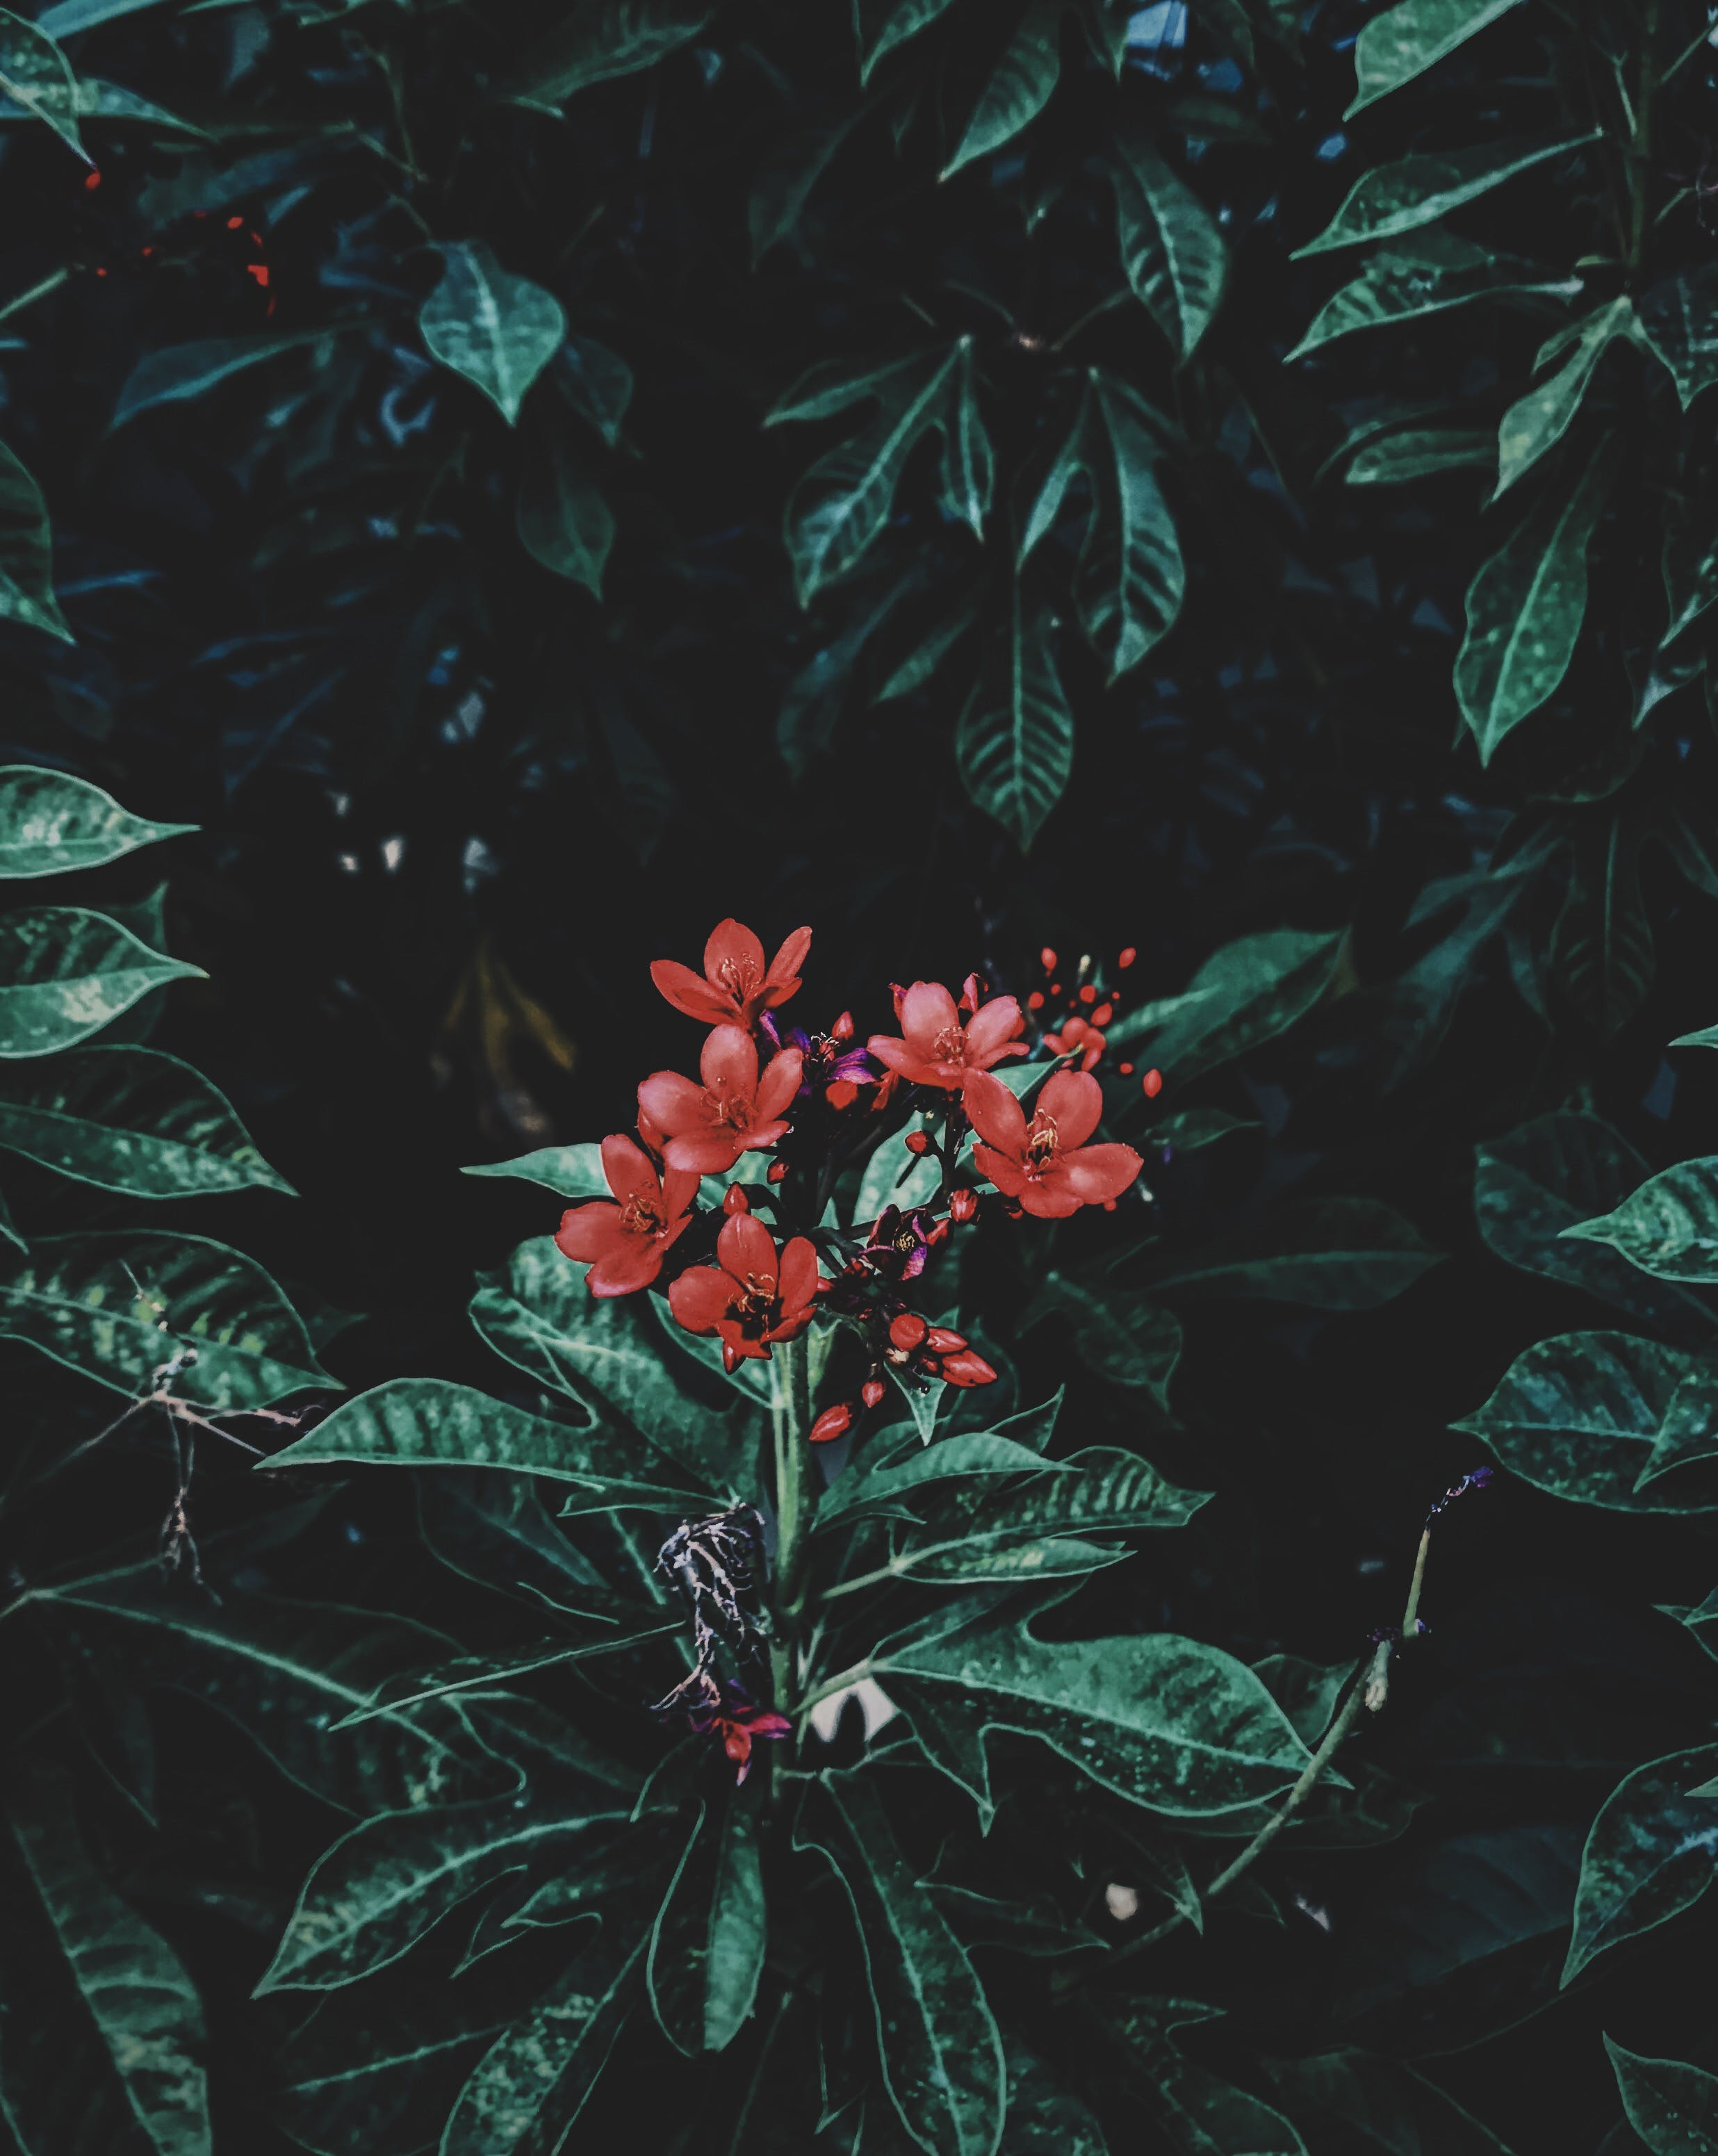 Photography of Red Flowers Near Leaves